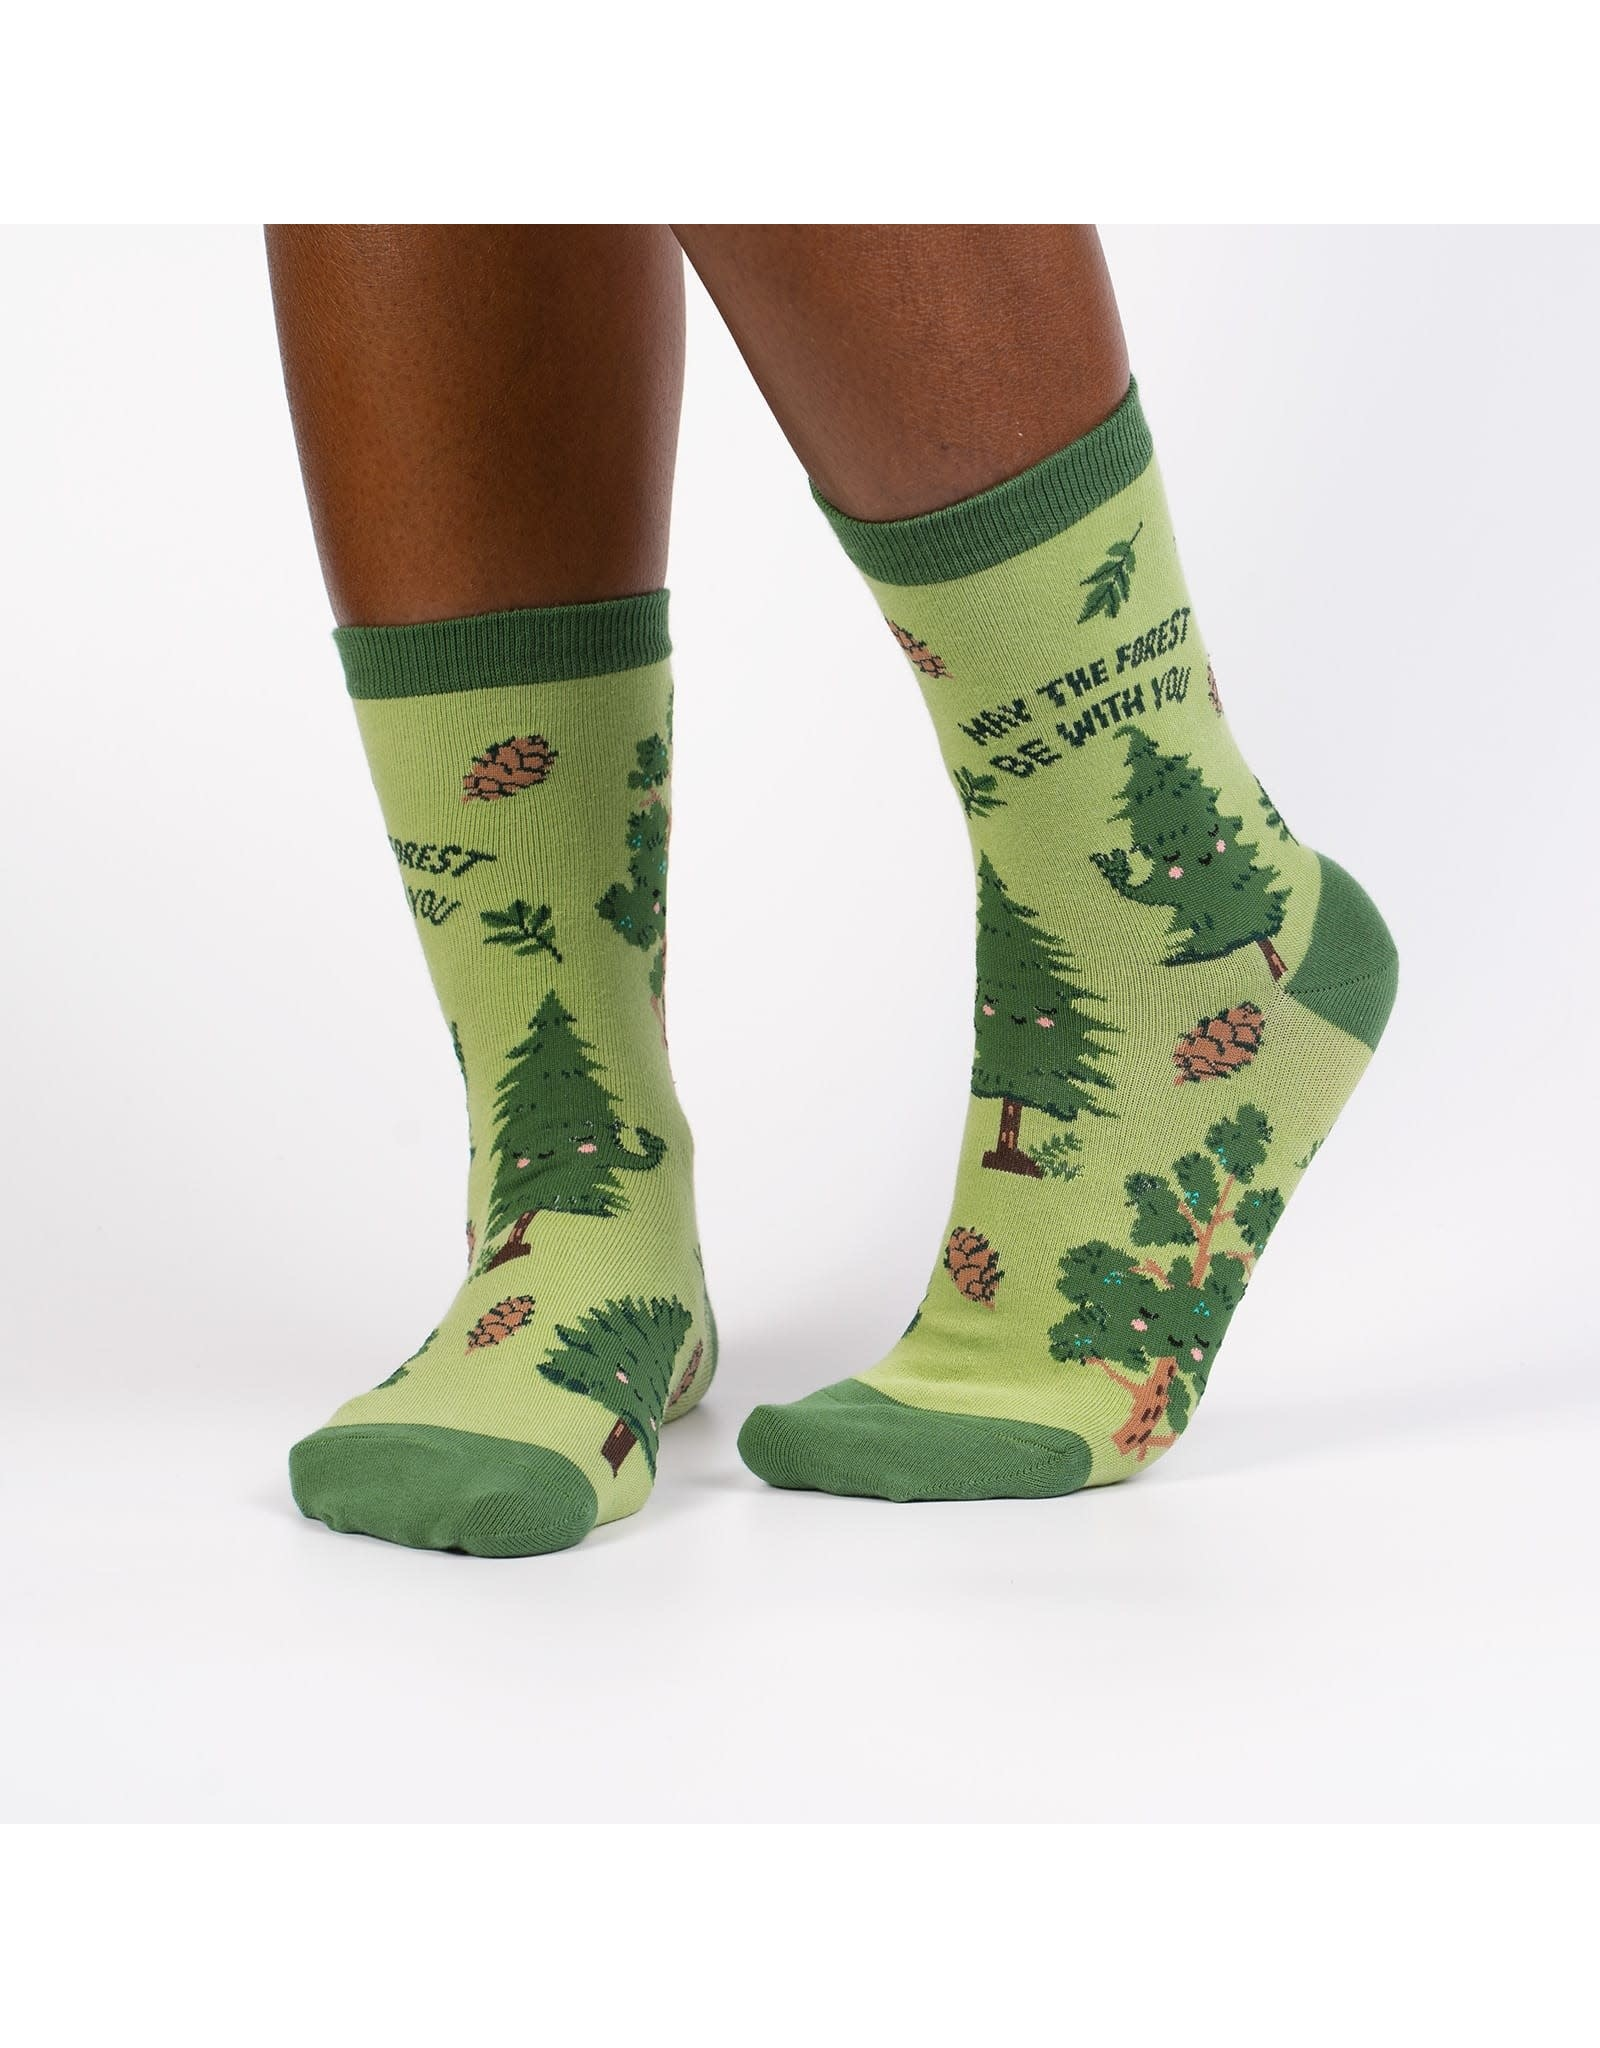 SOCK IT TO ME - Women's May The Forest Be With You Crew Socks